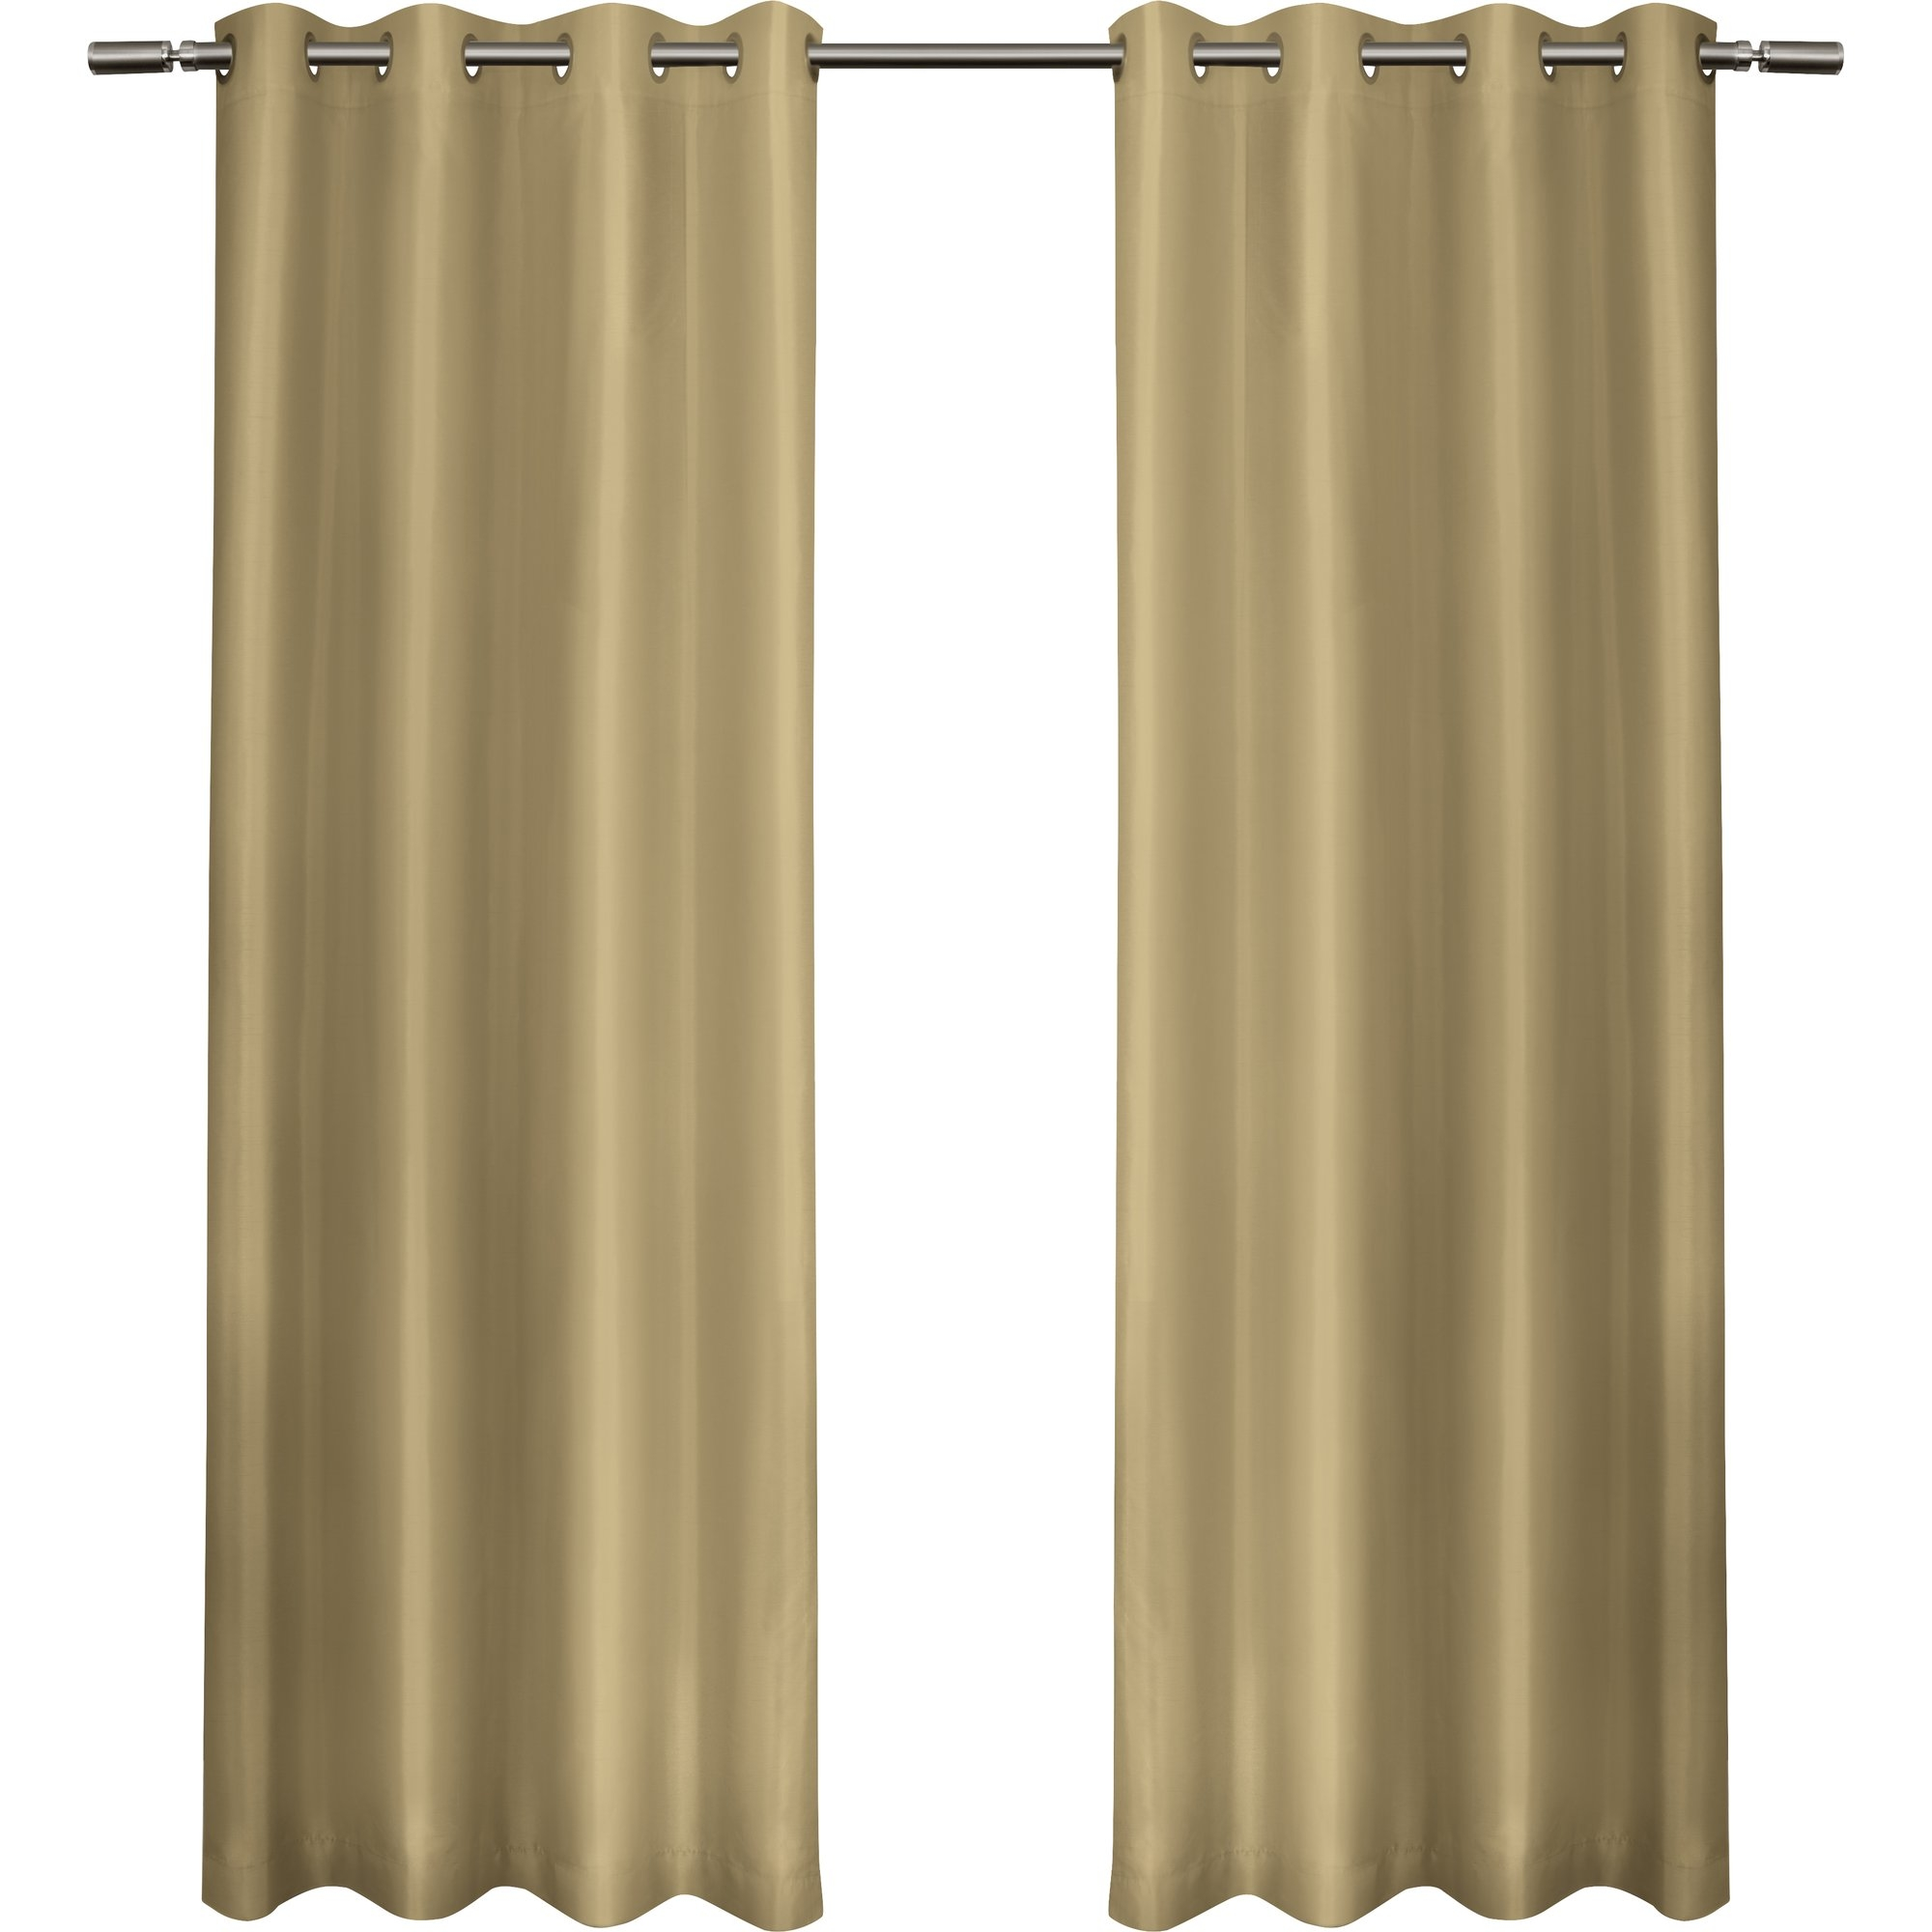 Amalgamated Textiles Solid Semi Sheer Thermal Curtain Panels Pertaining To Extra Wide Thermal Curtains (Image 2 of 15)